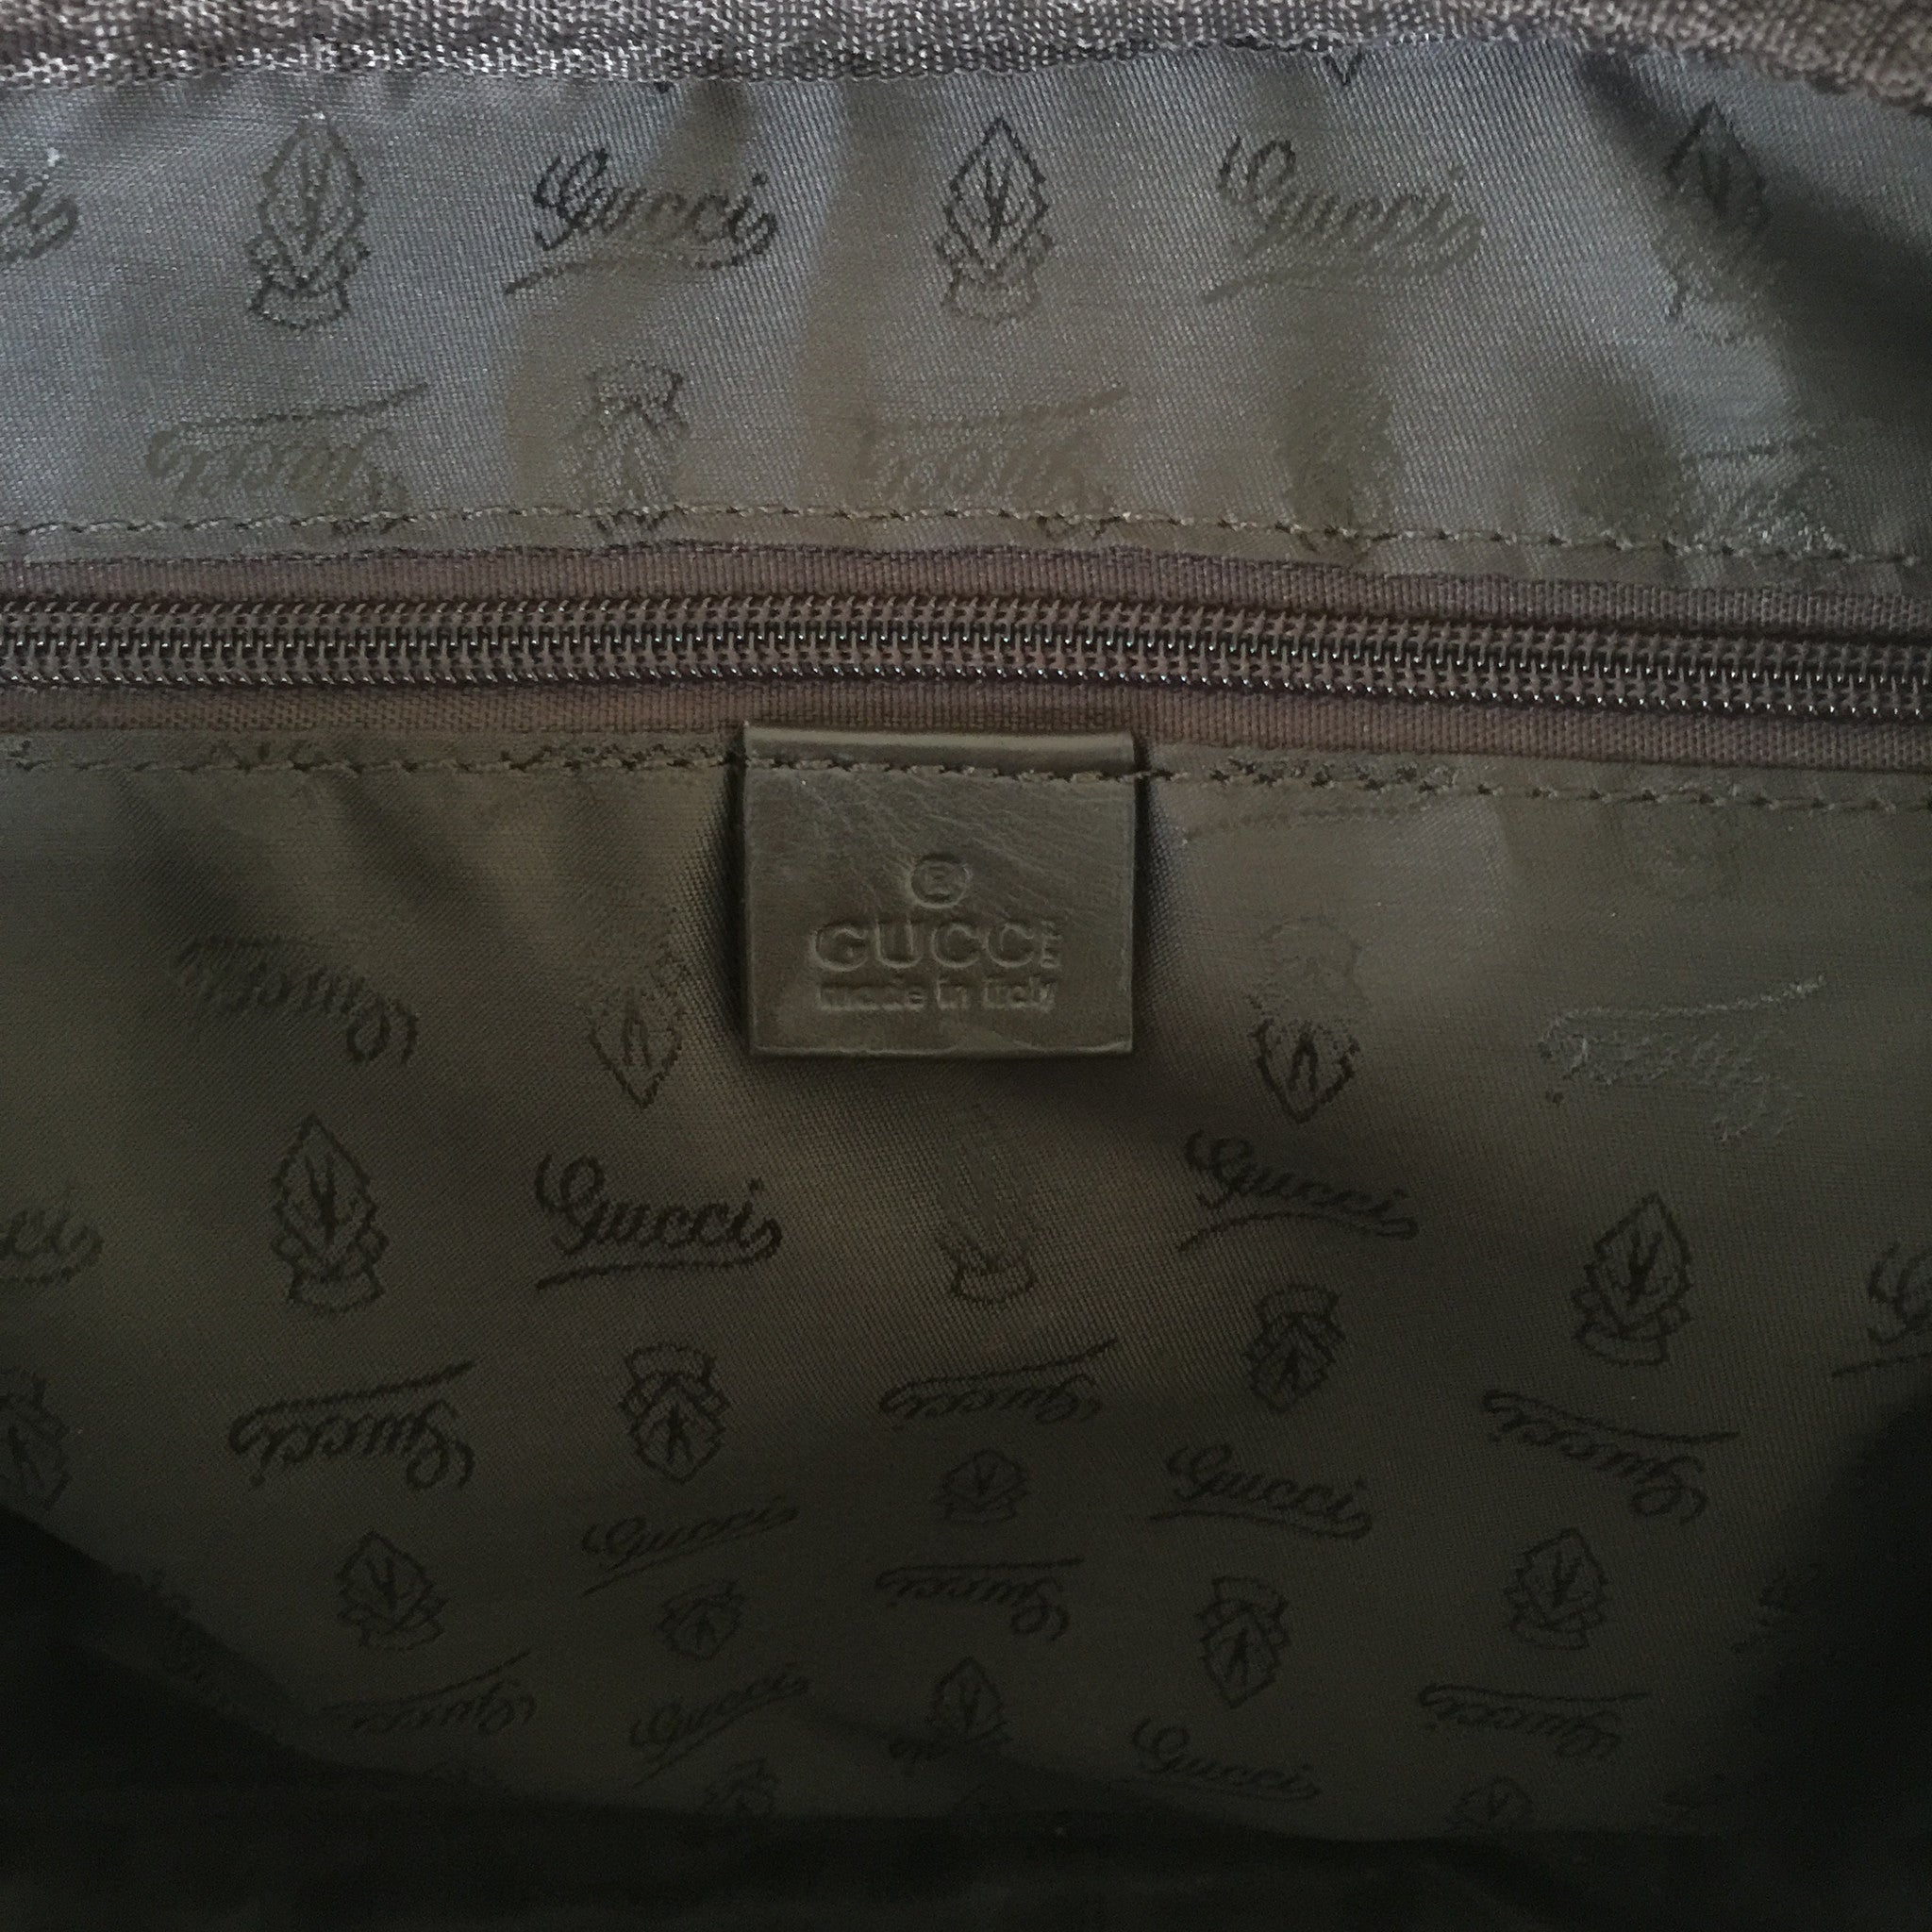 Authentic GUCCI Guccisimma Laptop Tote/Crossbody